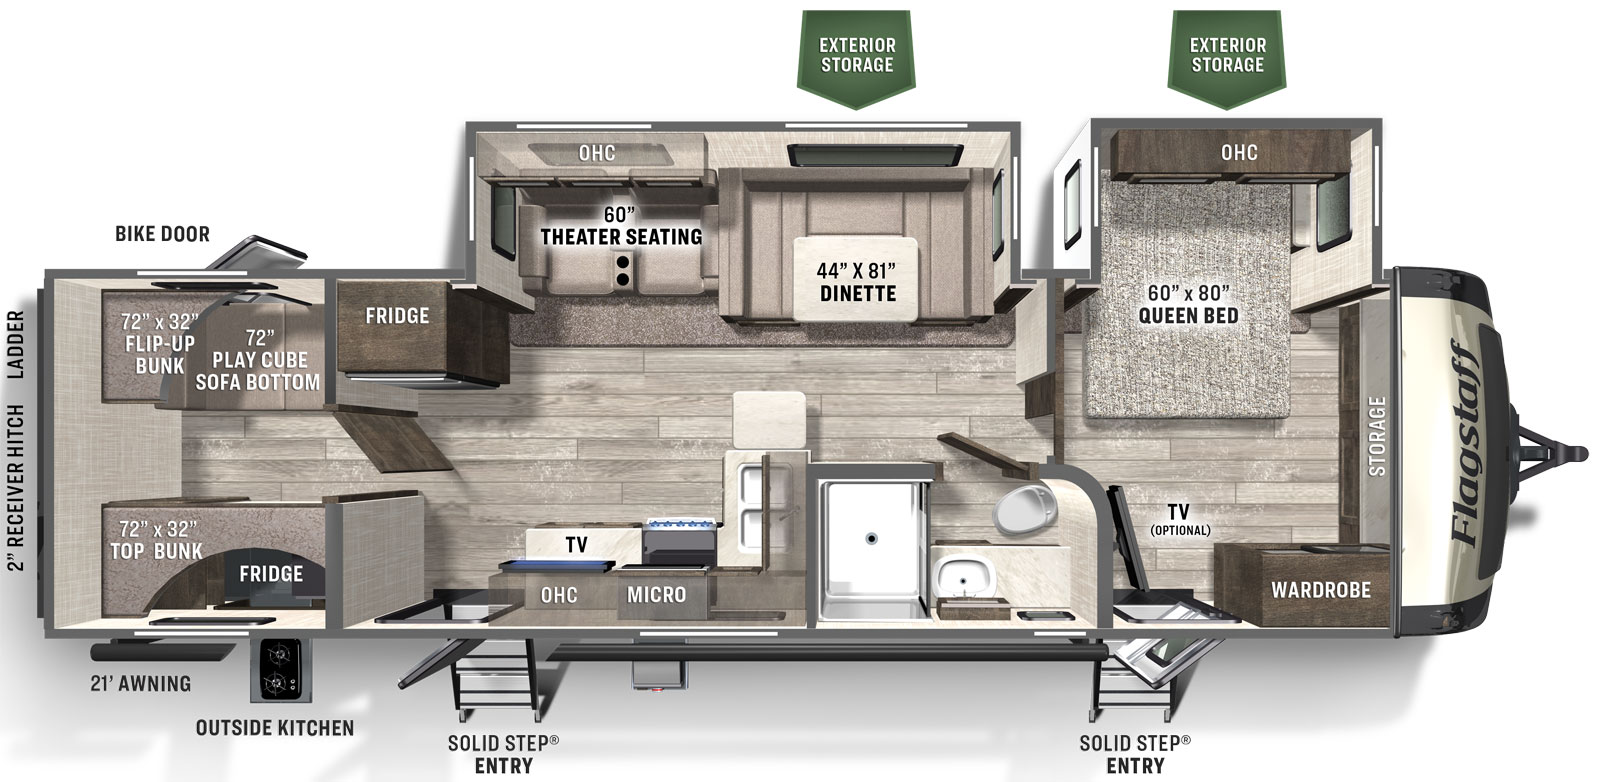 Flagstaff Super Lite 29bhs Forest River Rv Manufacturer Of Travel Trailers Fifth Wheels Tent Campers Motorhomes